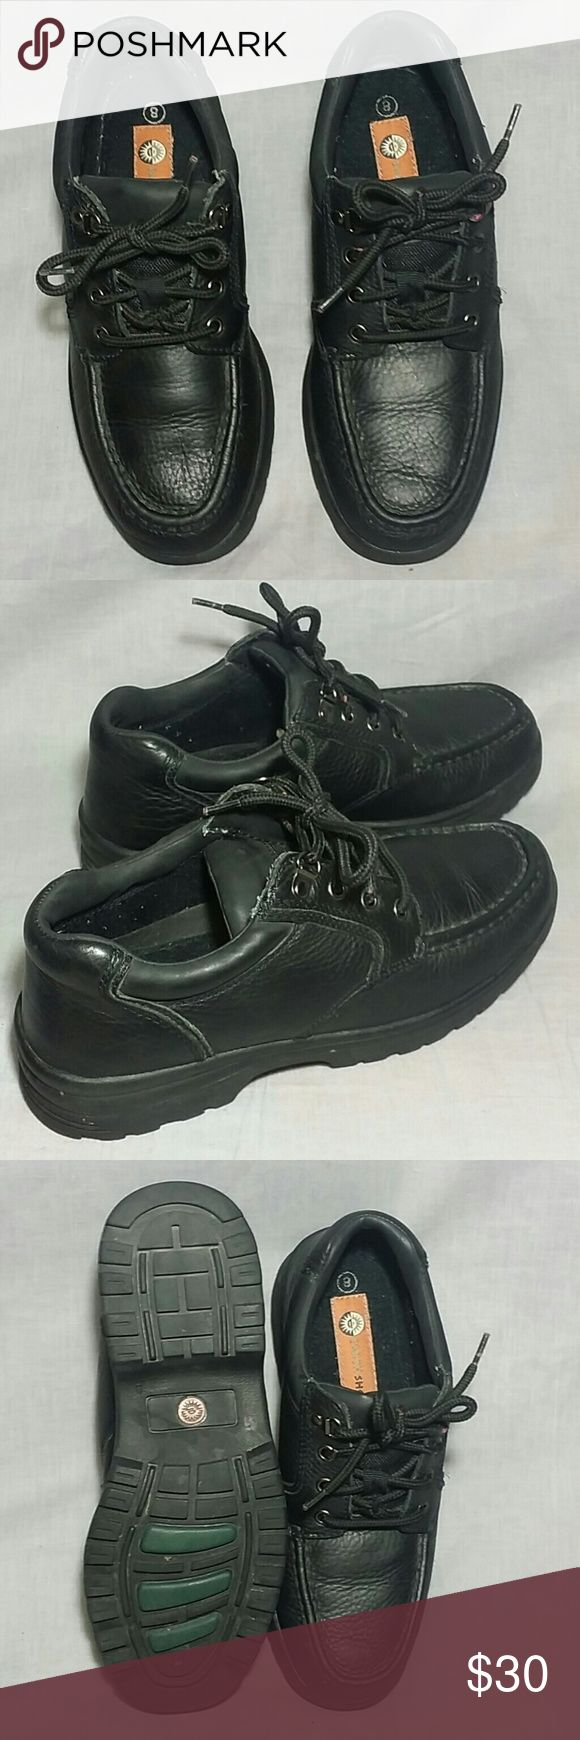 Men's EARTH SHOE Shoes Black 8 M Leather Lace-ups Item is in a good condition, NO PETS AND SMOKE FREE HOME. Earth Shoe  Shoes Boat Shoes